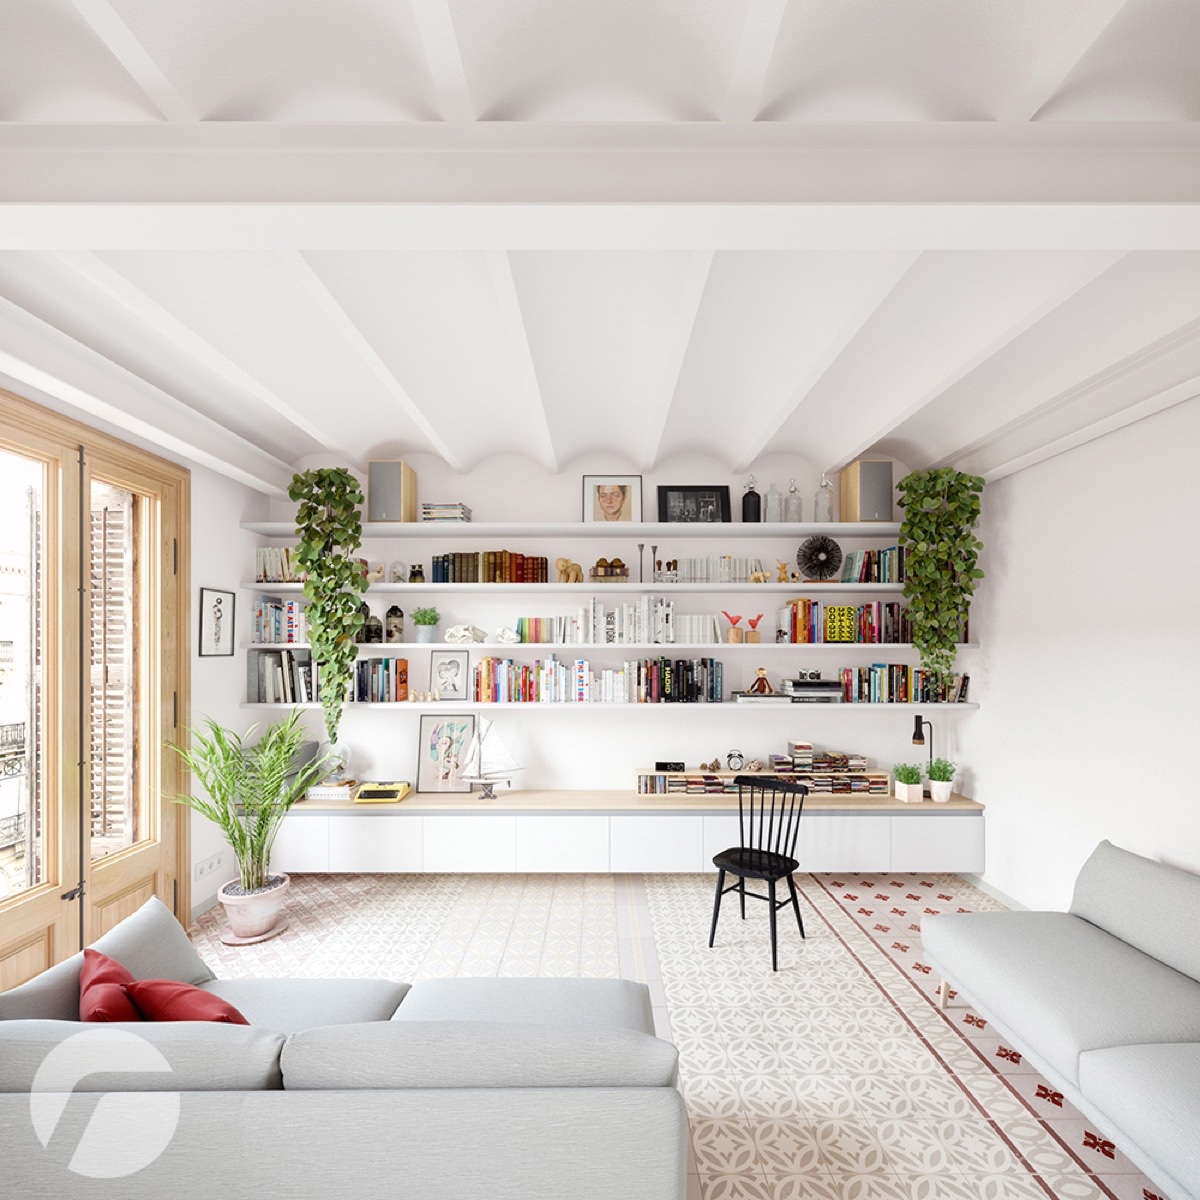 Inside Home Design: 10 Stunning Apartments That Show Off The Beauty Of Nordic